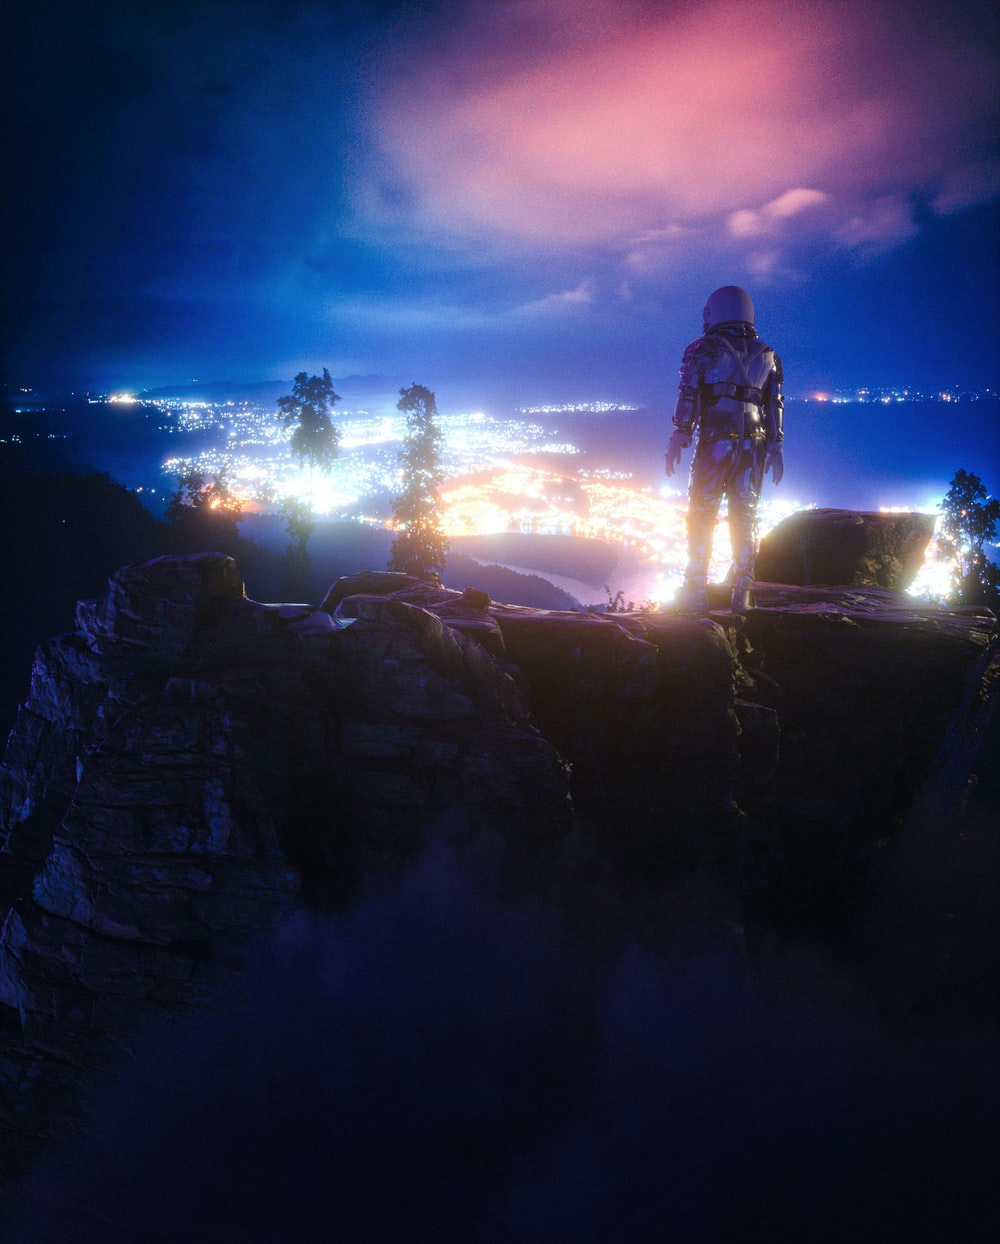 man standing on rock formation during night time